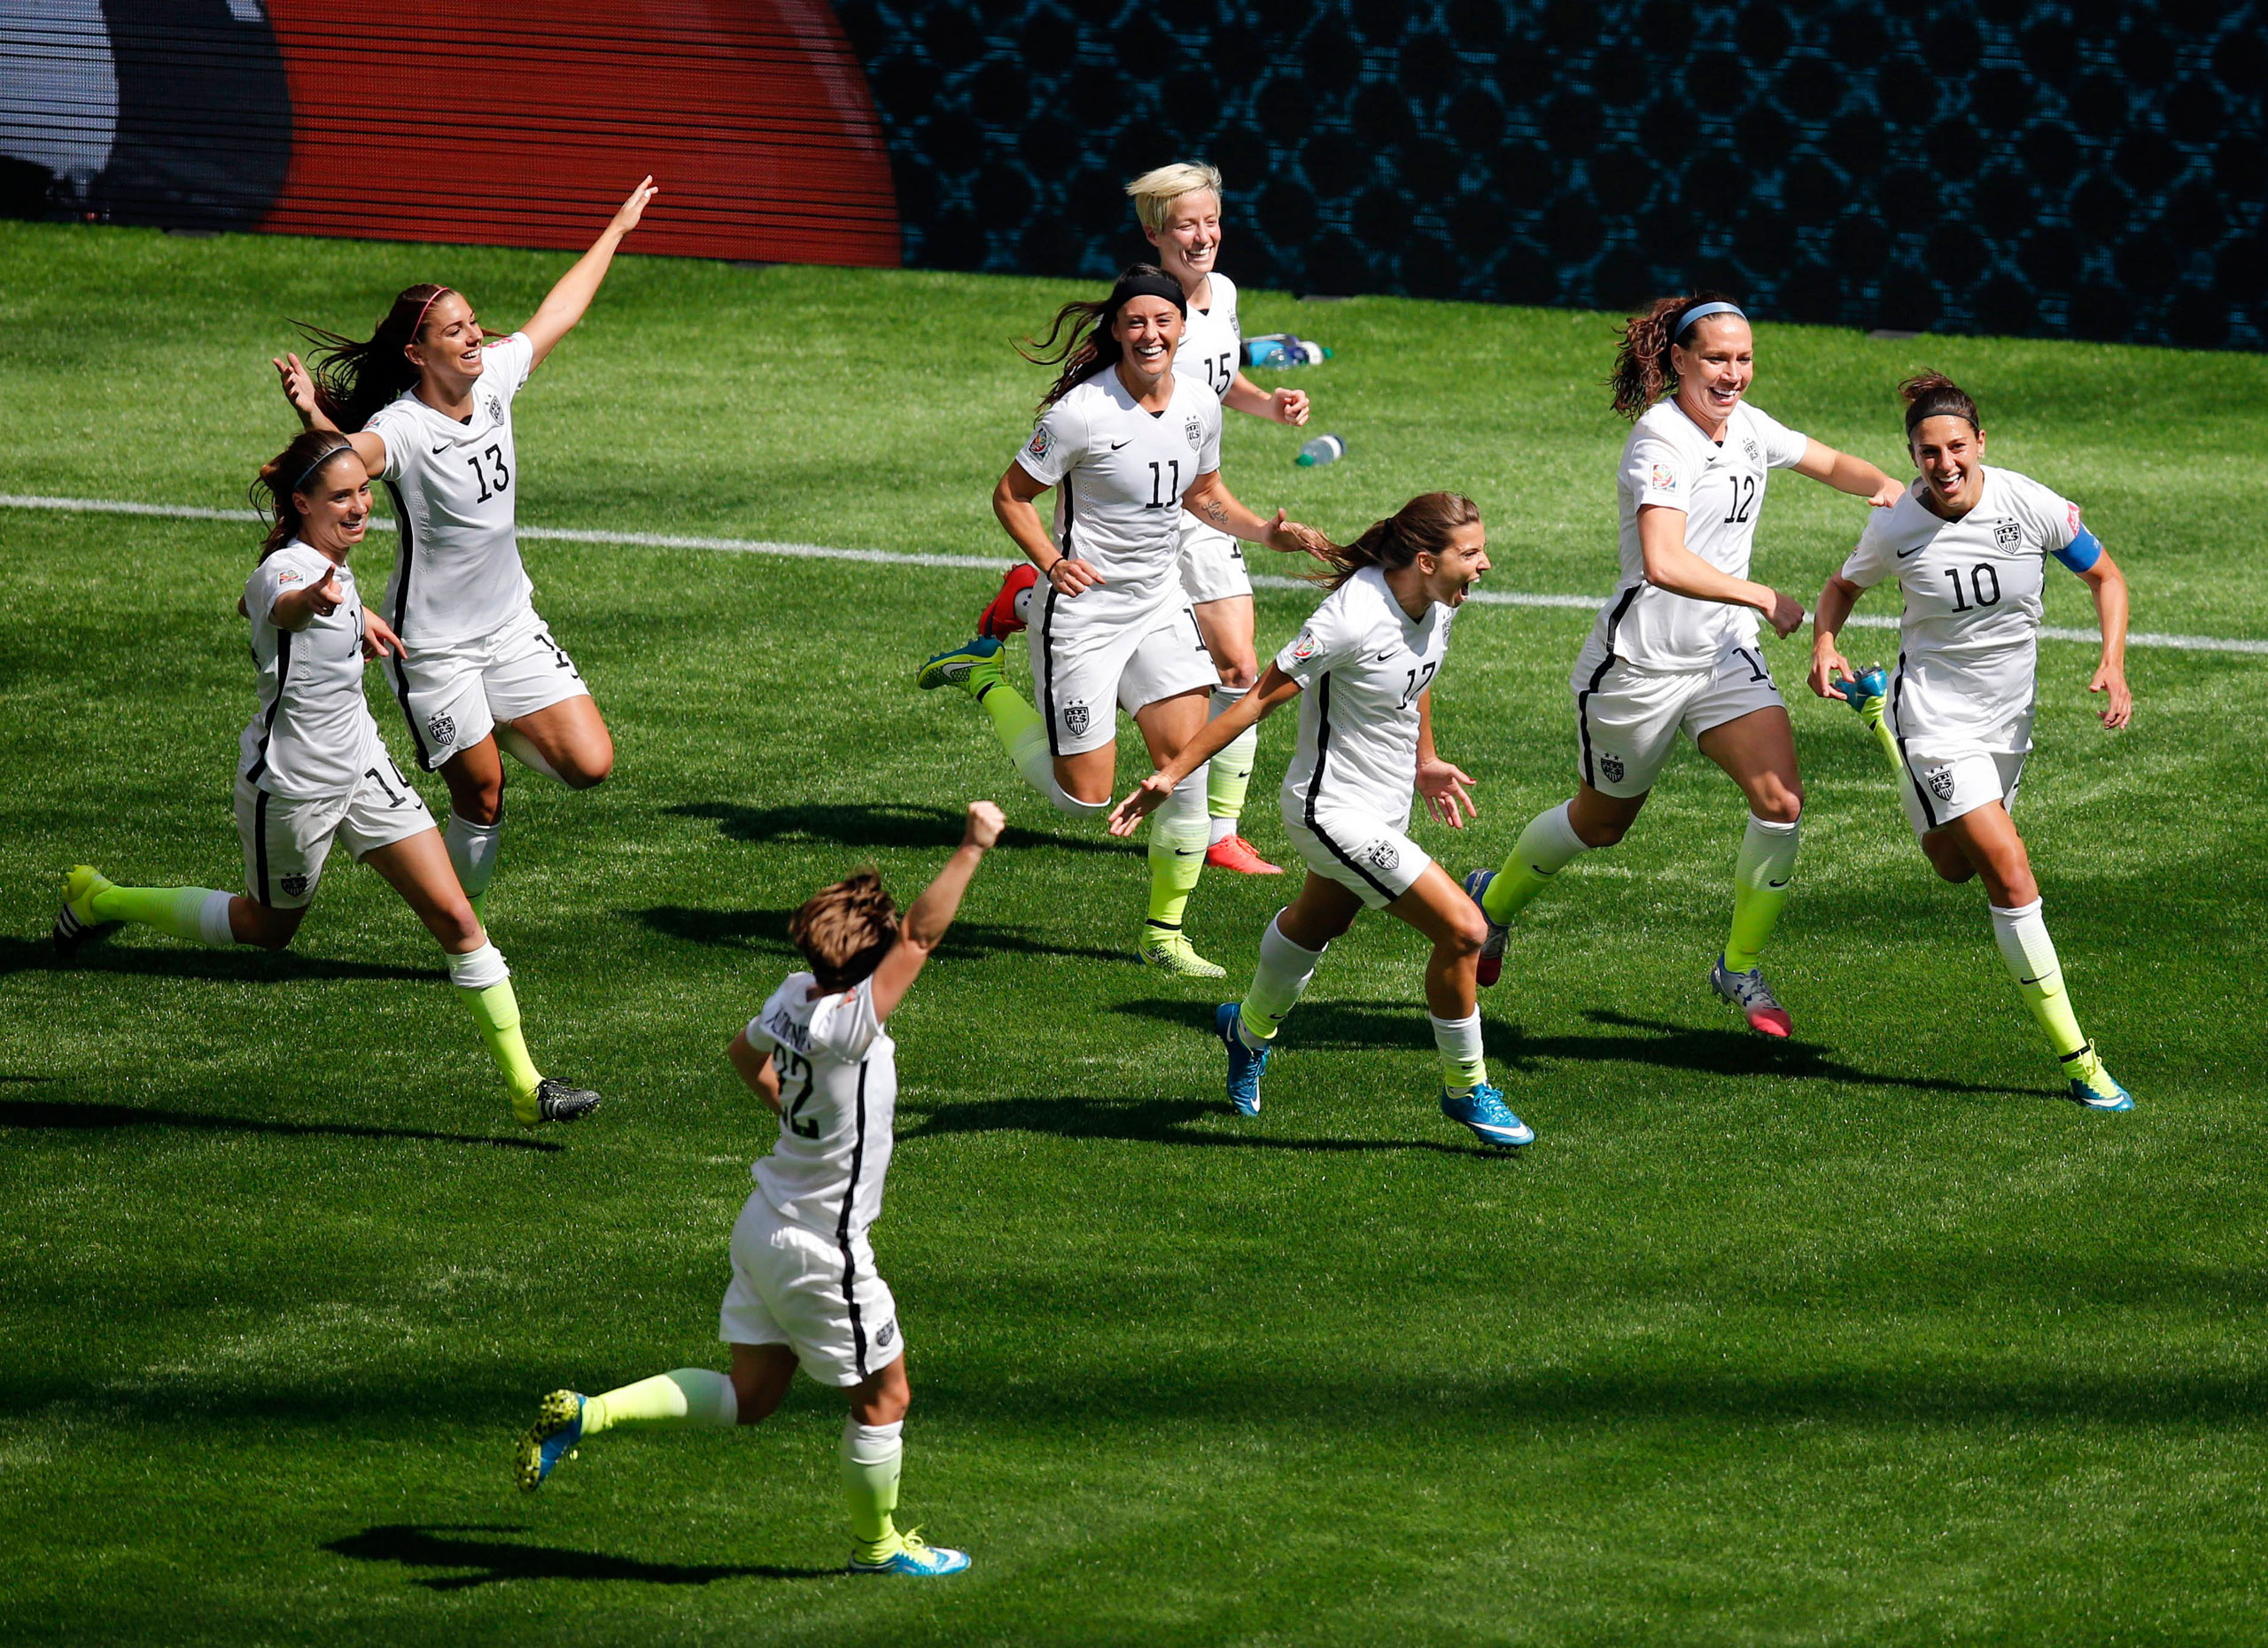 United States midfielder Carli Lloyd celebrates with teammates after scoring against Japan during the first half of the final of the FIFA 2015 Women's World Cup at BC Place Stadium, Vancouver, British Columbia. July 5, 2015